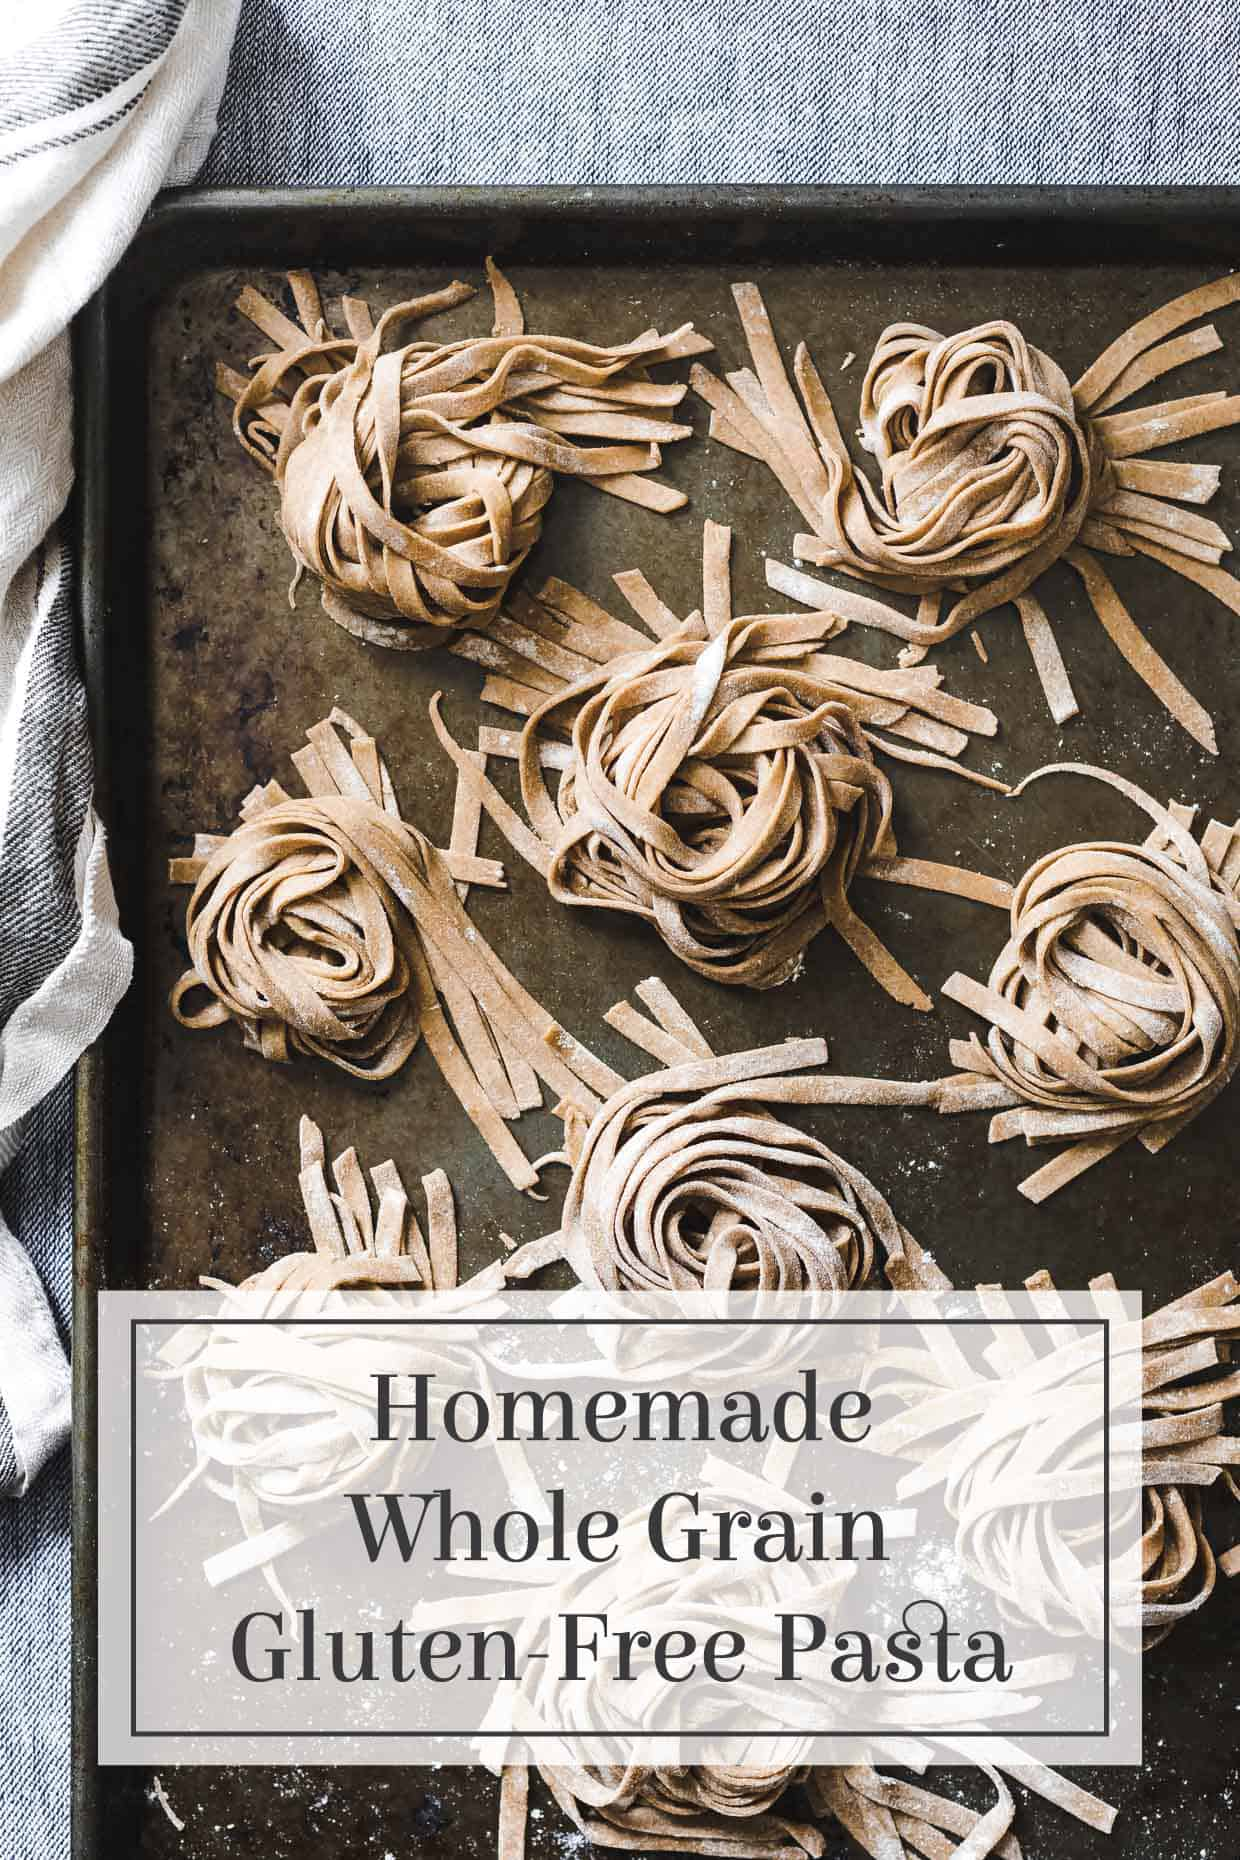 Homemade Whole Grain Gluten-Free Pasta